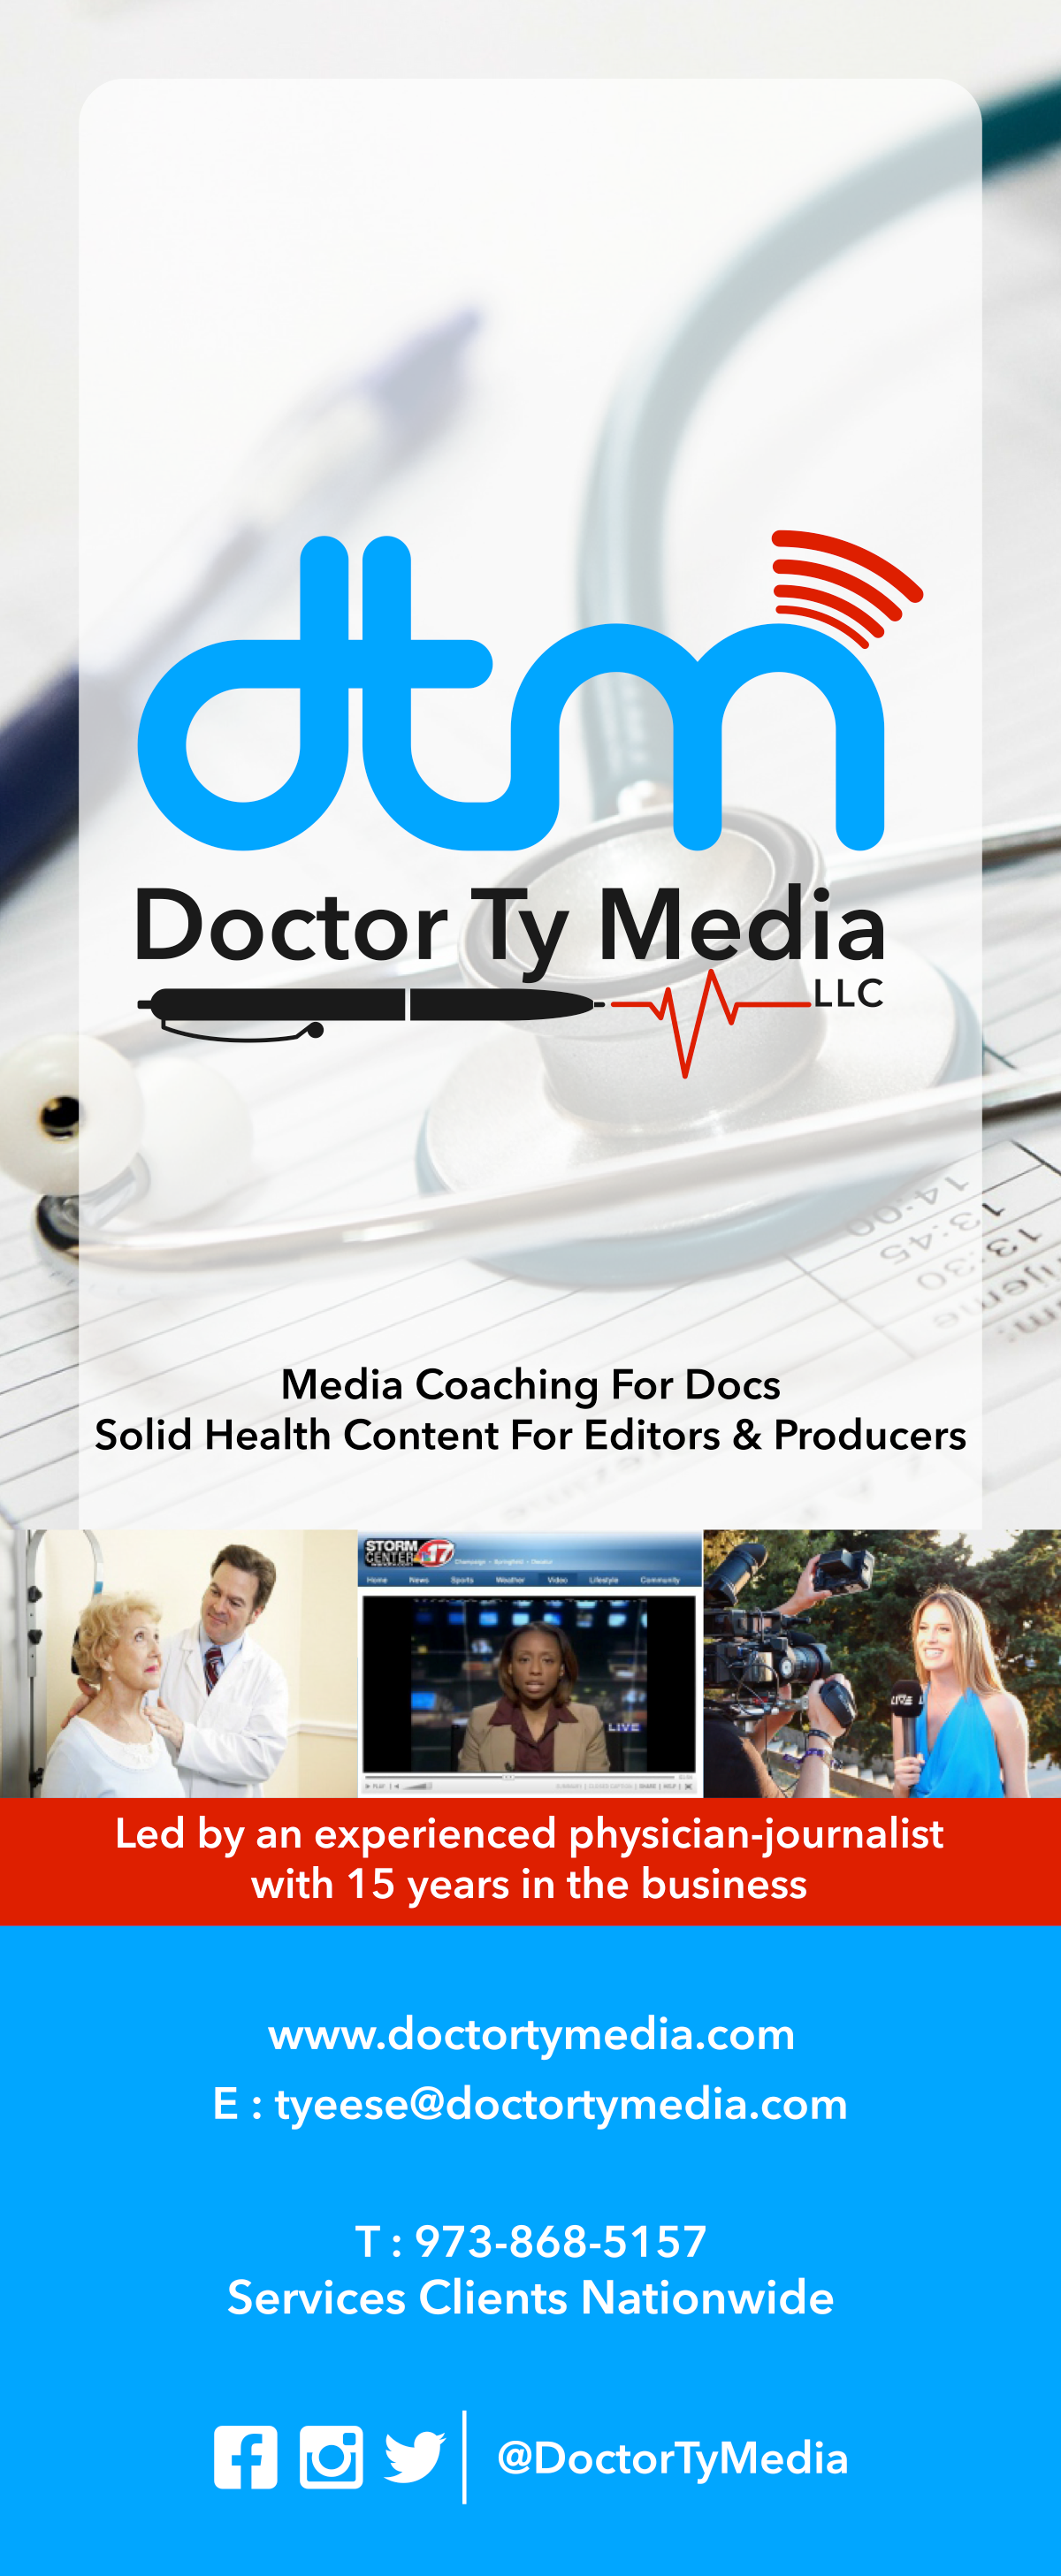 Doctor Ty Media Rack Cards